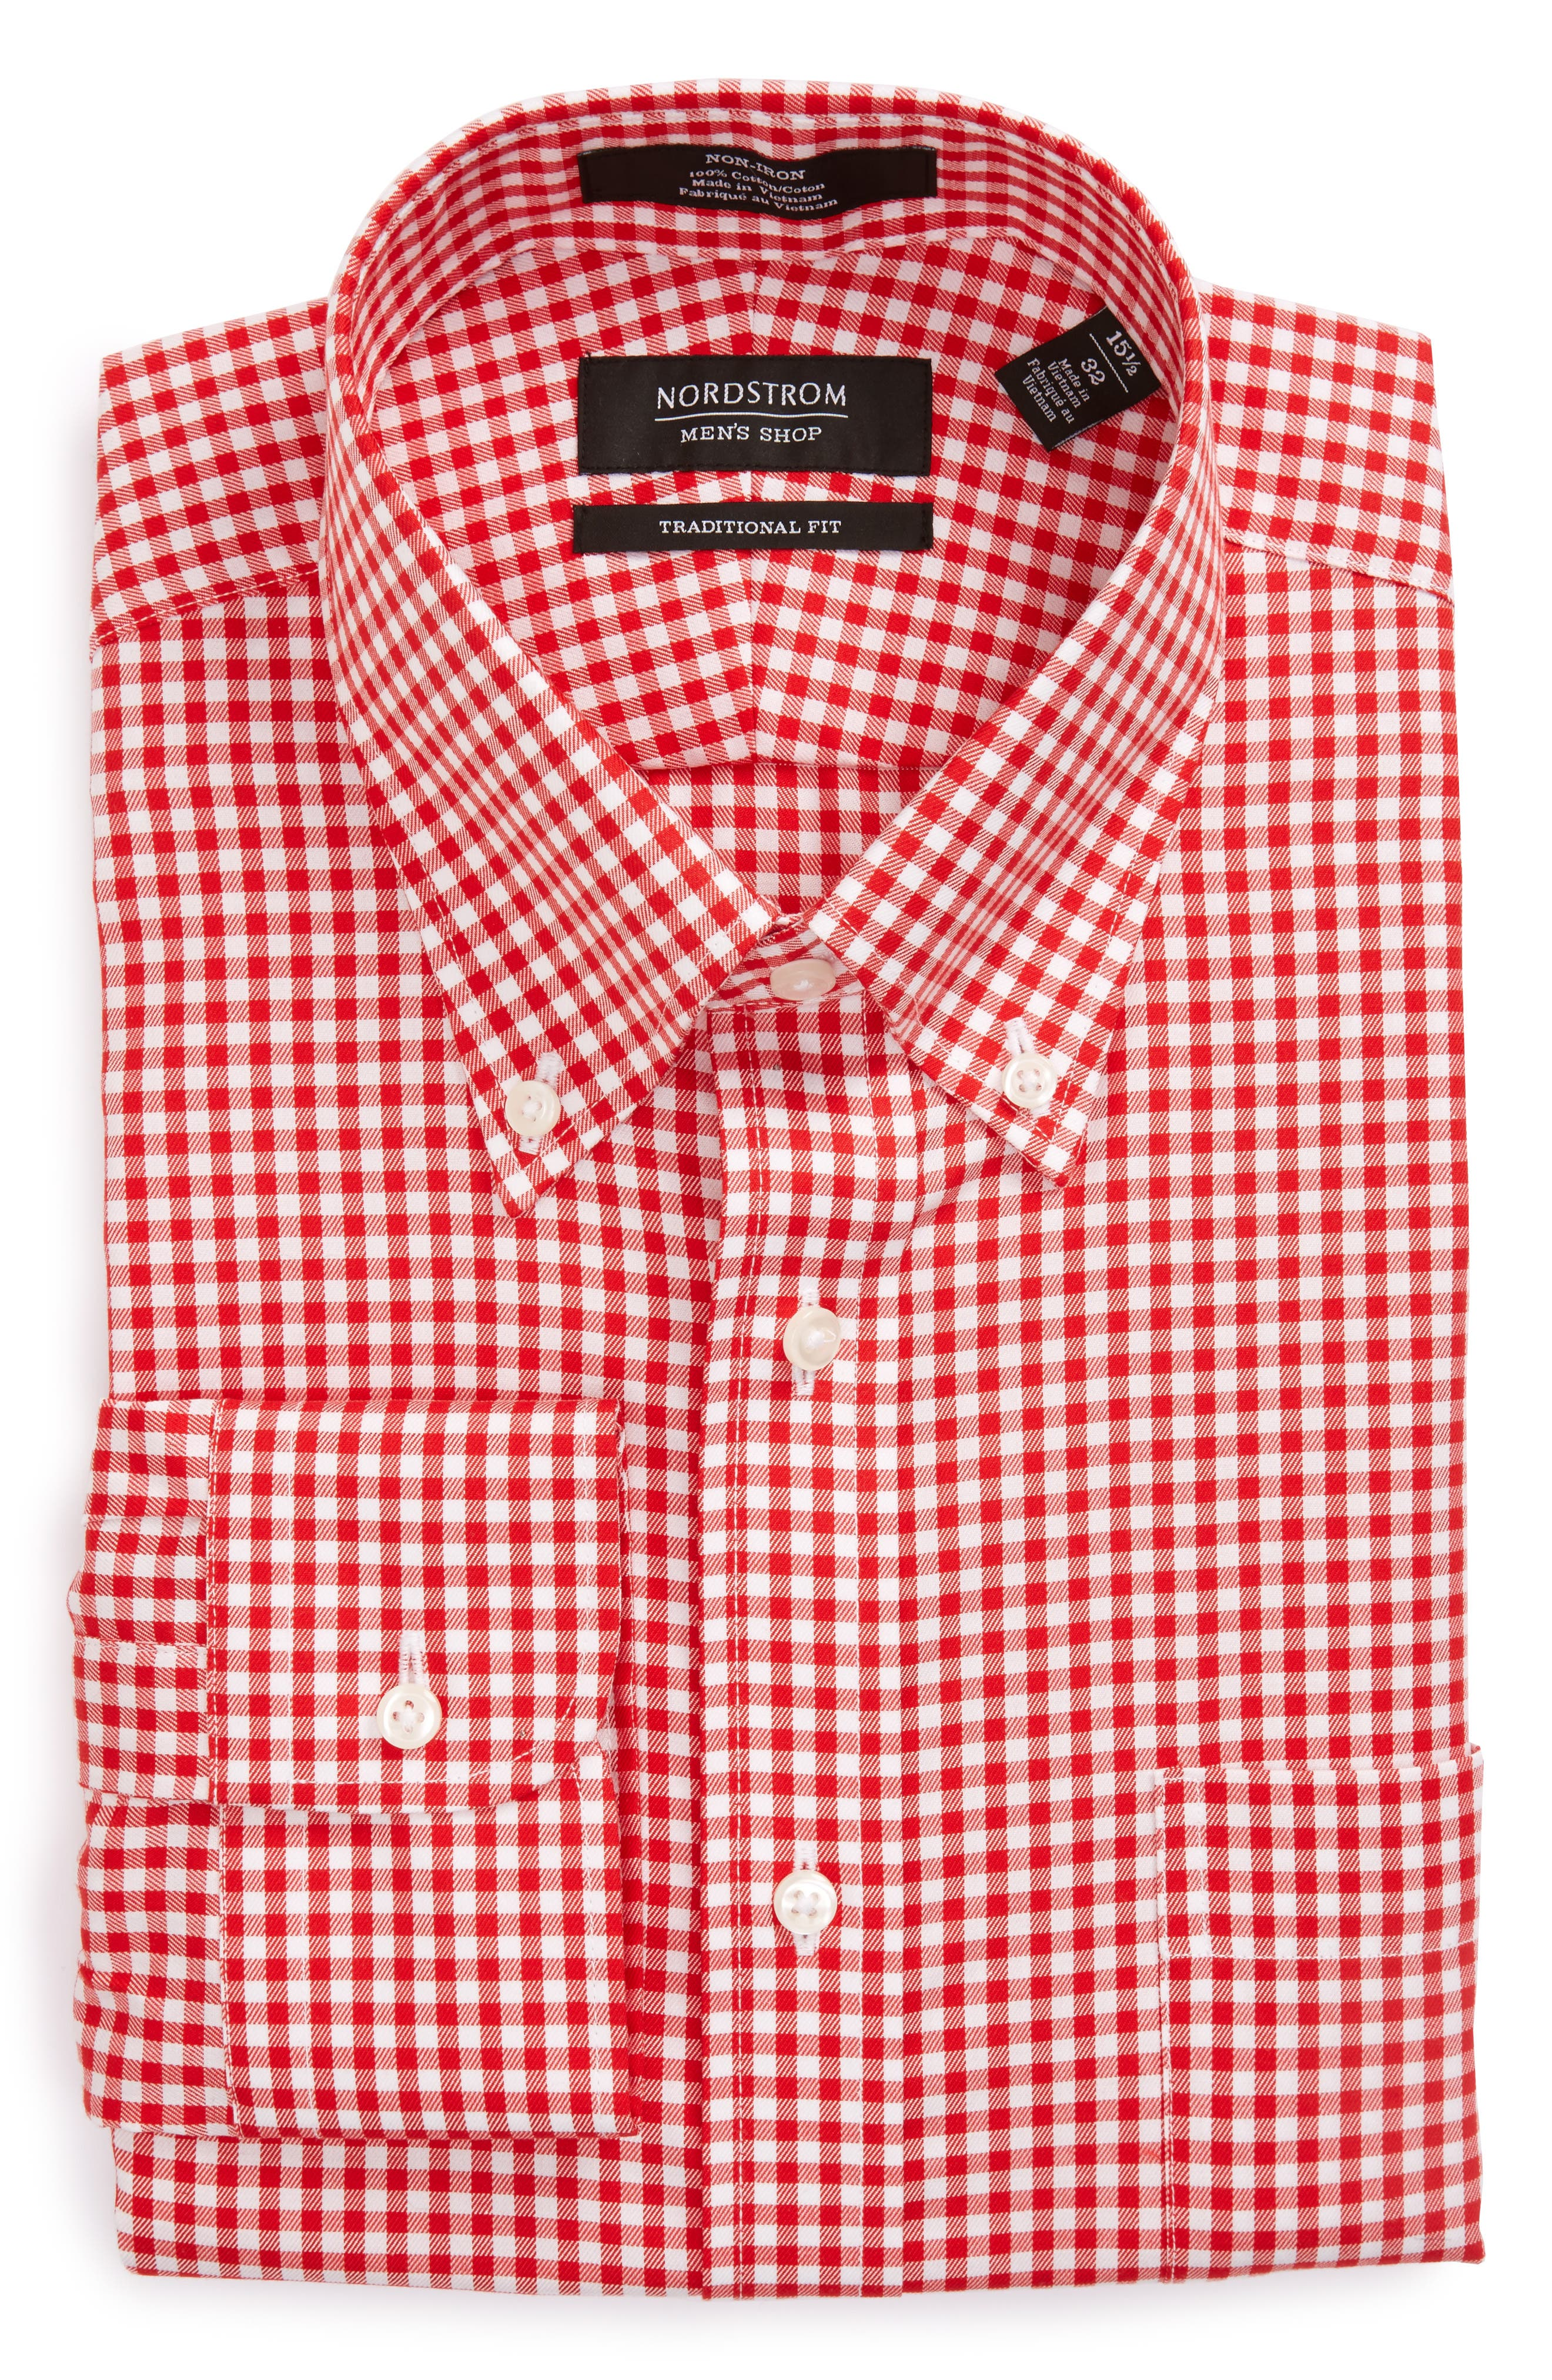 Main Image - Nordstrom Men's Shop Traditional Fit Non-Iron Gingham Dress Shirt